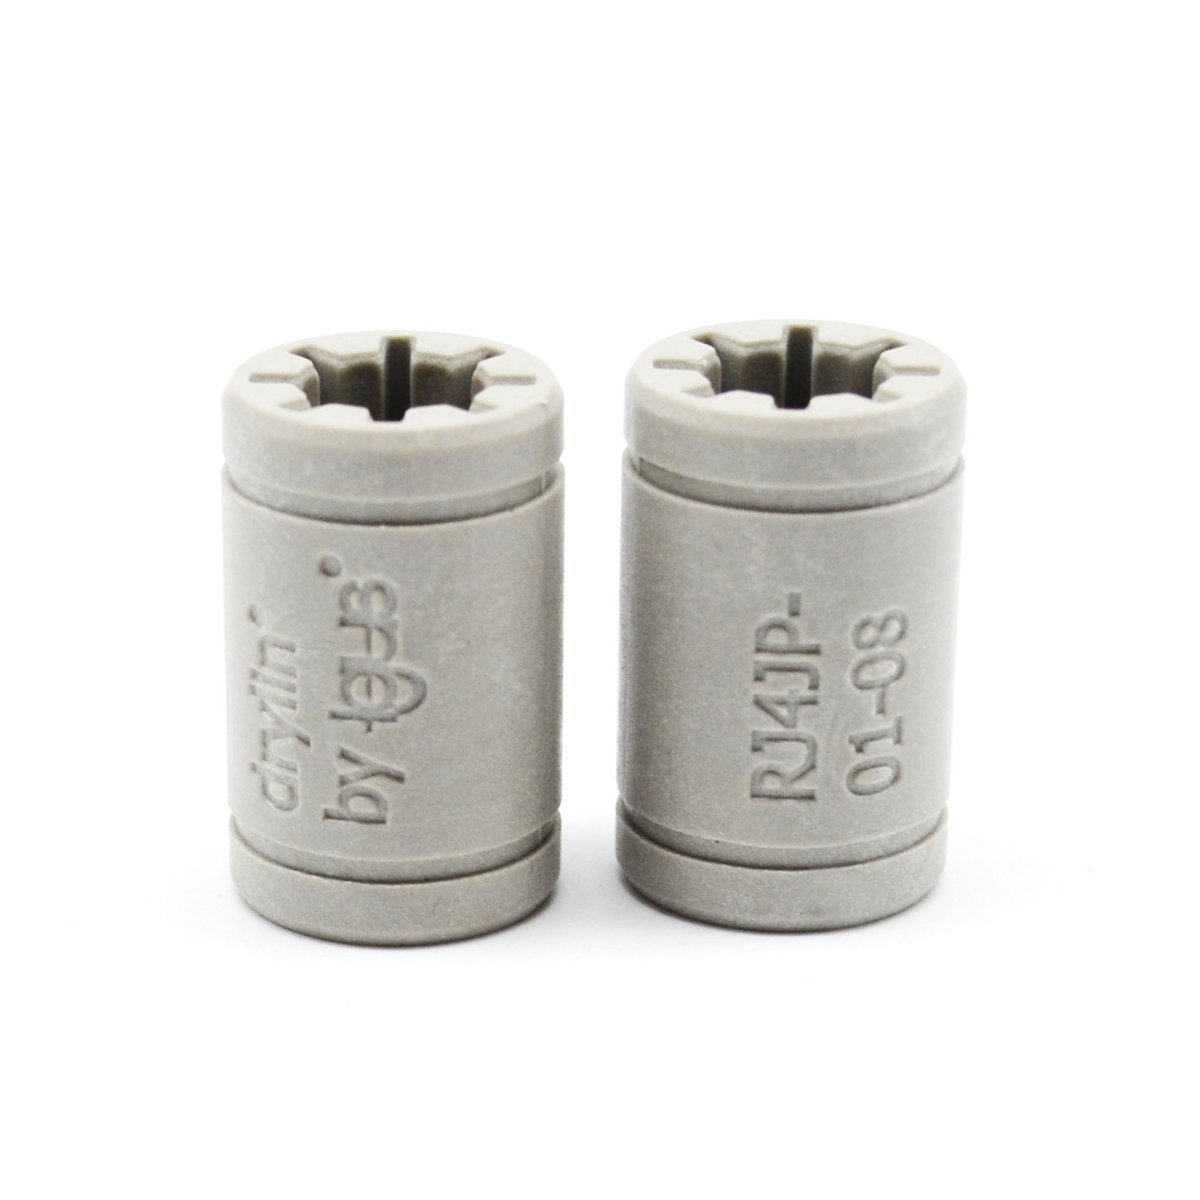 2 Pcs 3D Printer Solid Polymer LM10UU Bearing 10mm shaft Igus Drylin RJ4JP-01-10